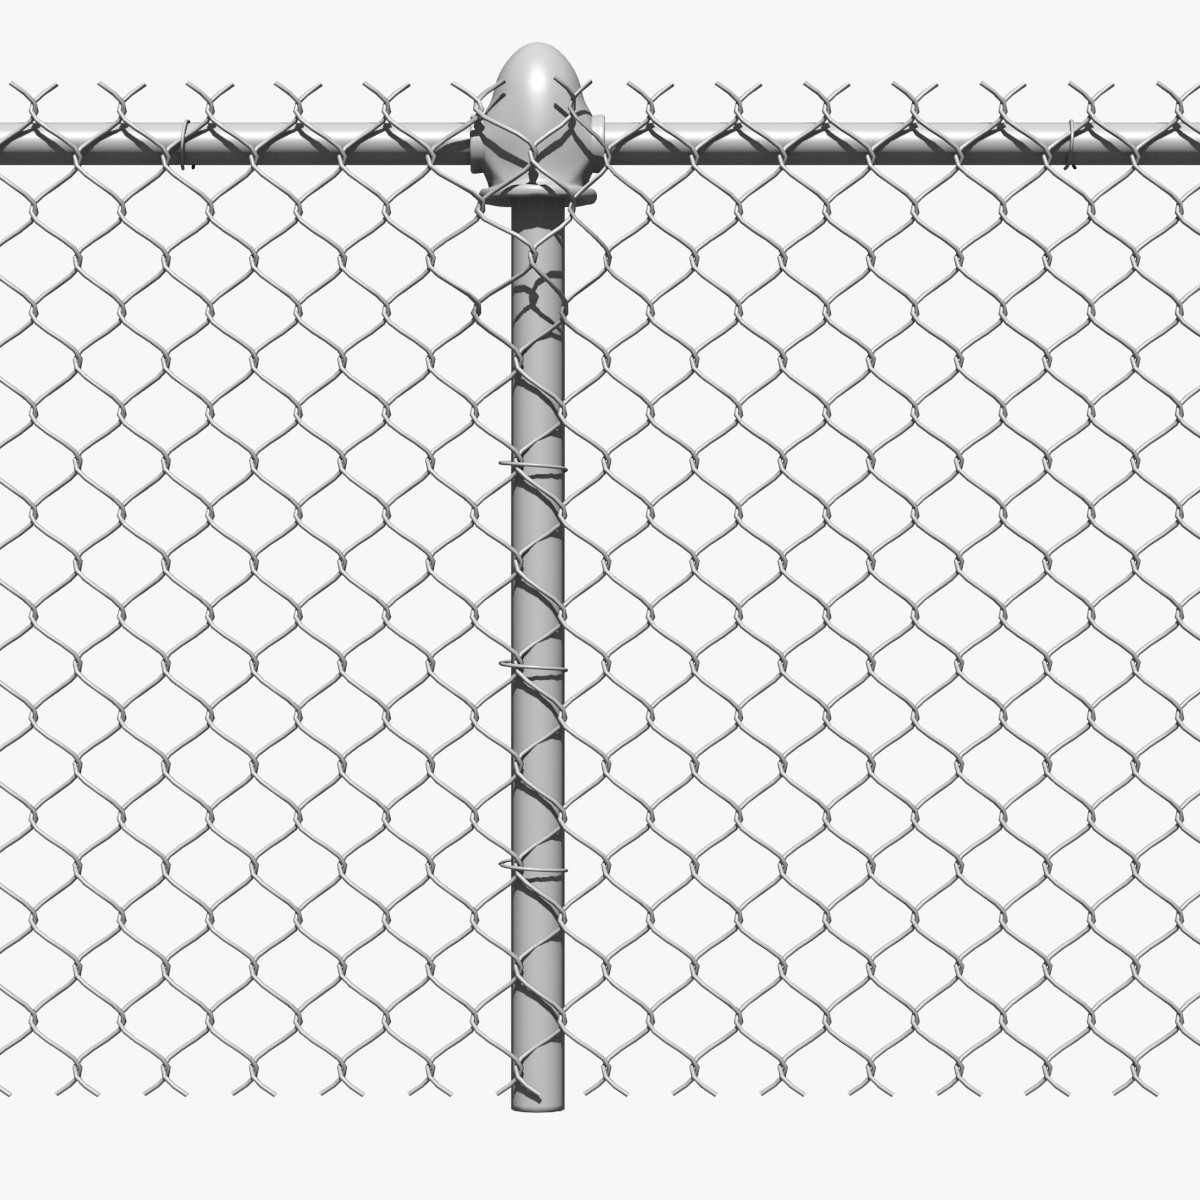 Fence PNG - 19866